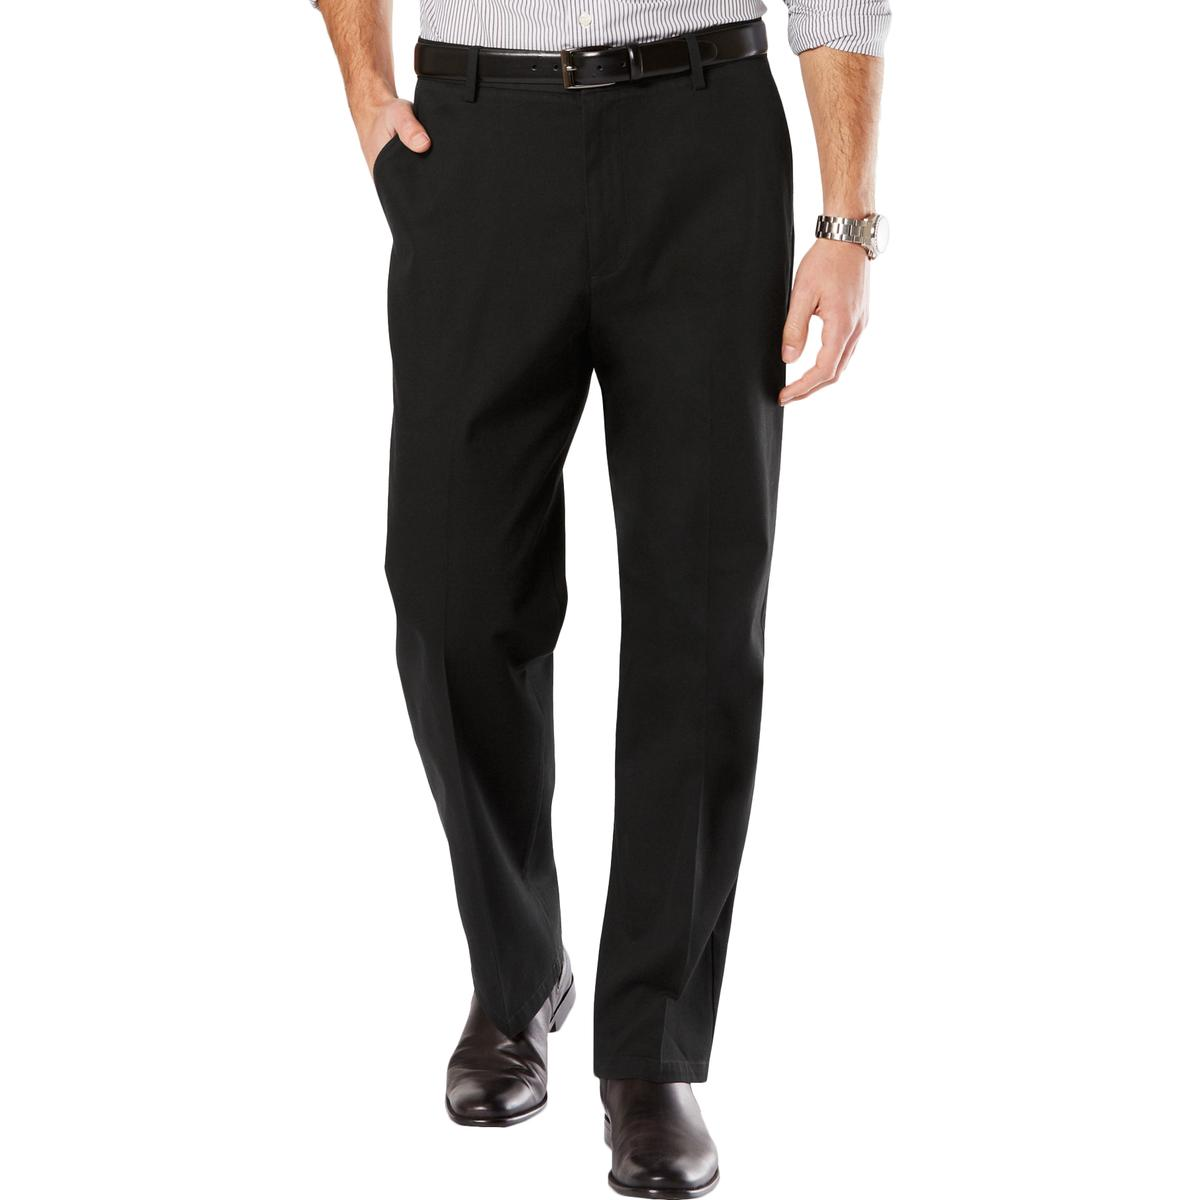 Dockers Mens Cotton Relaxed Fit Khaki Pants by Dockers